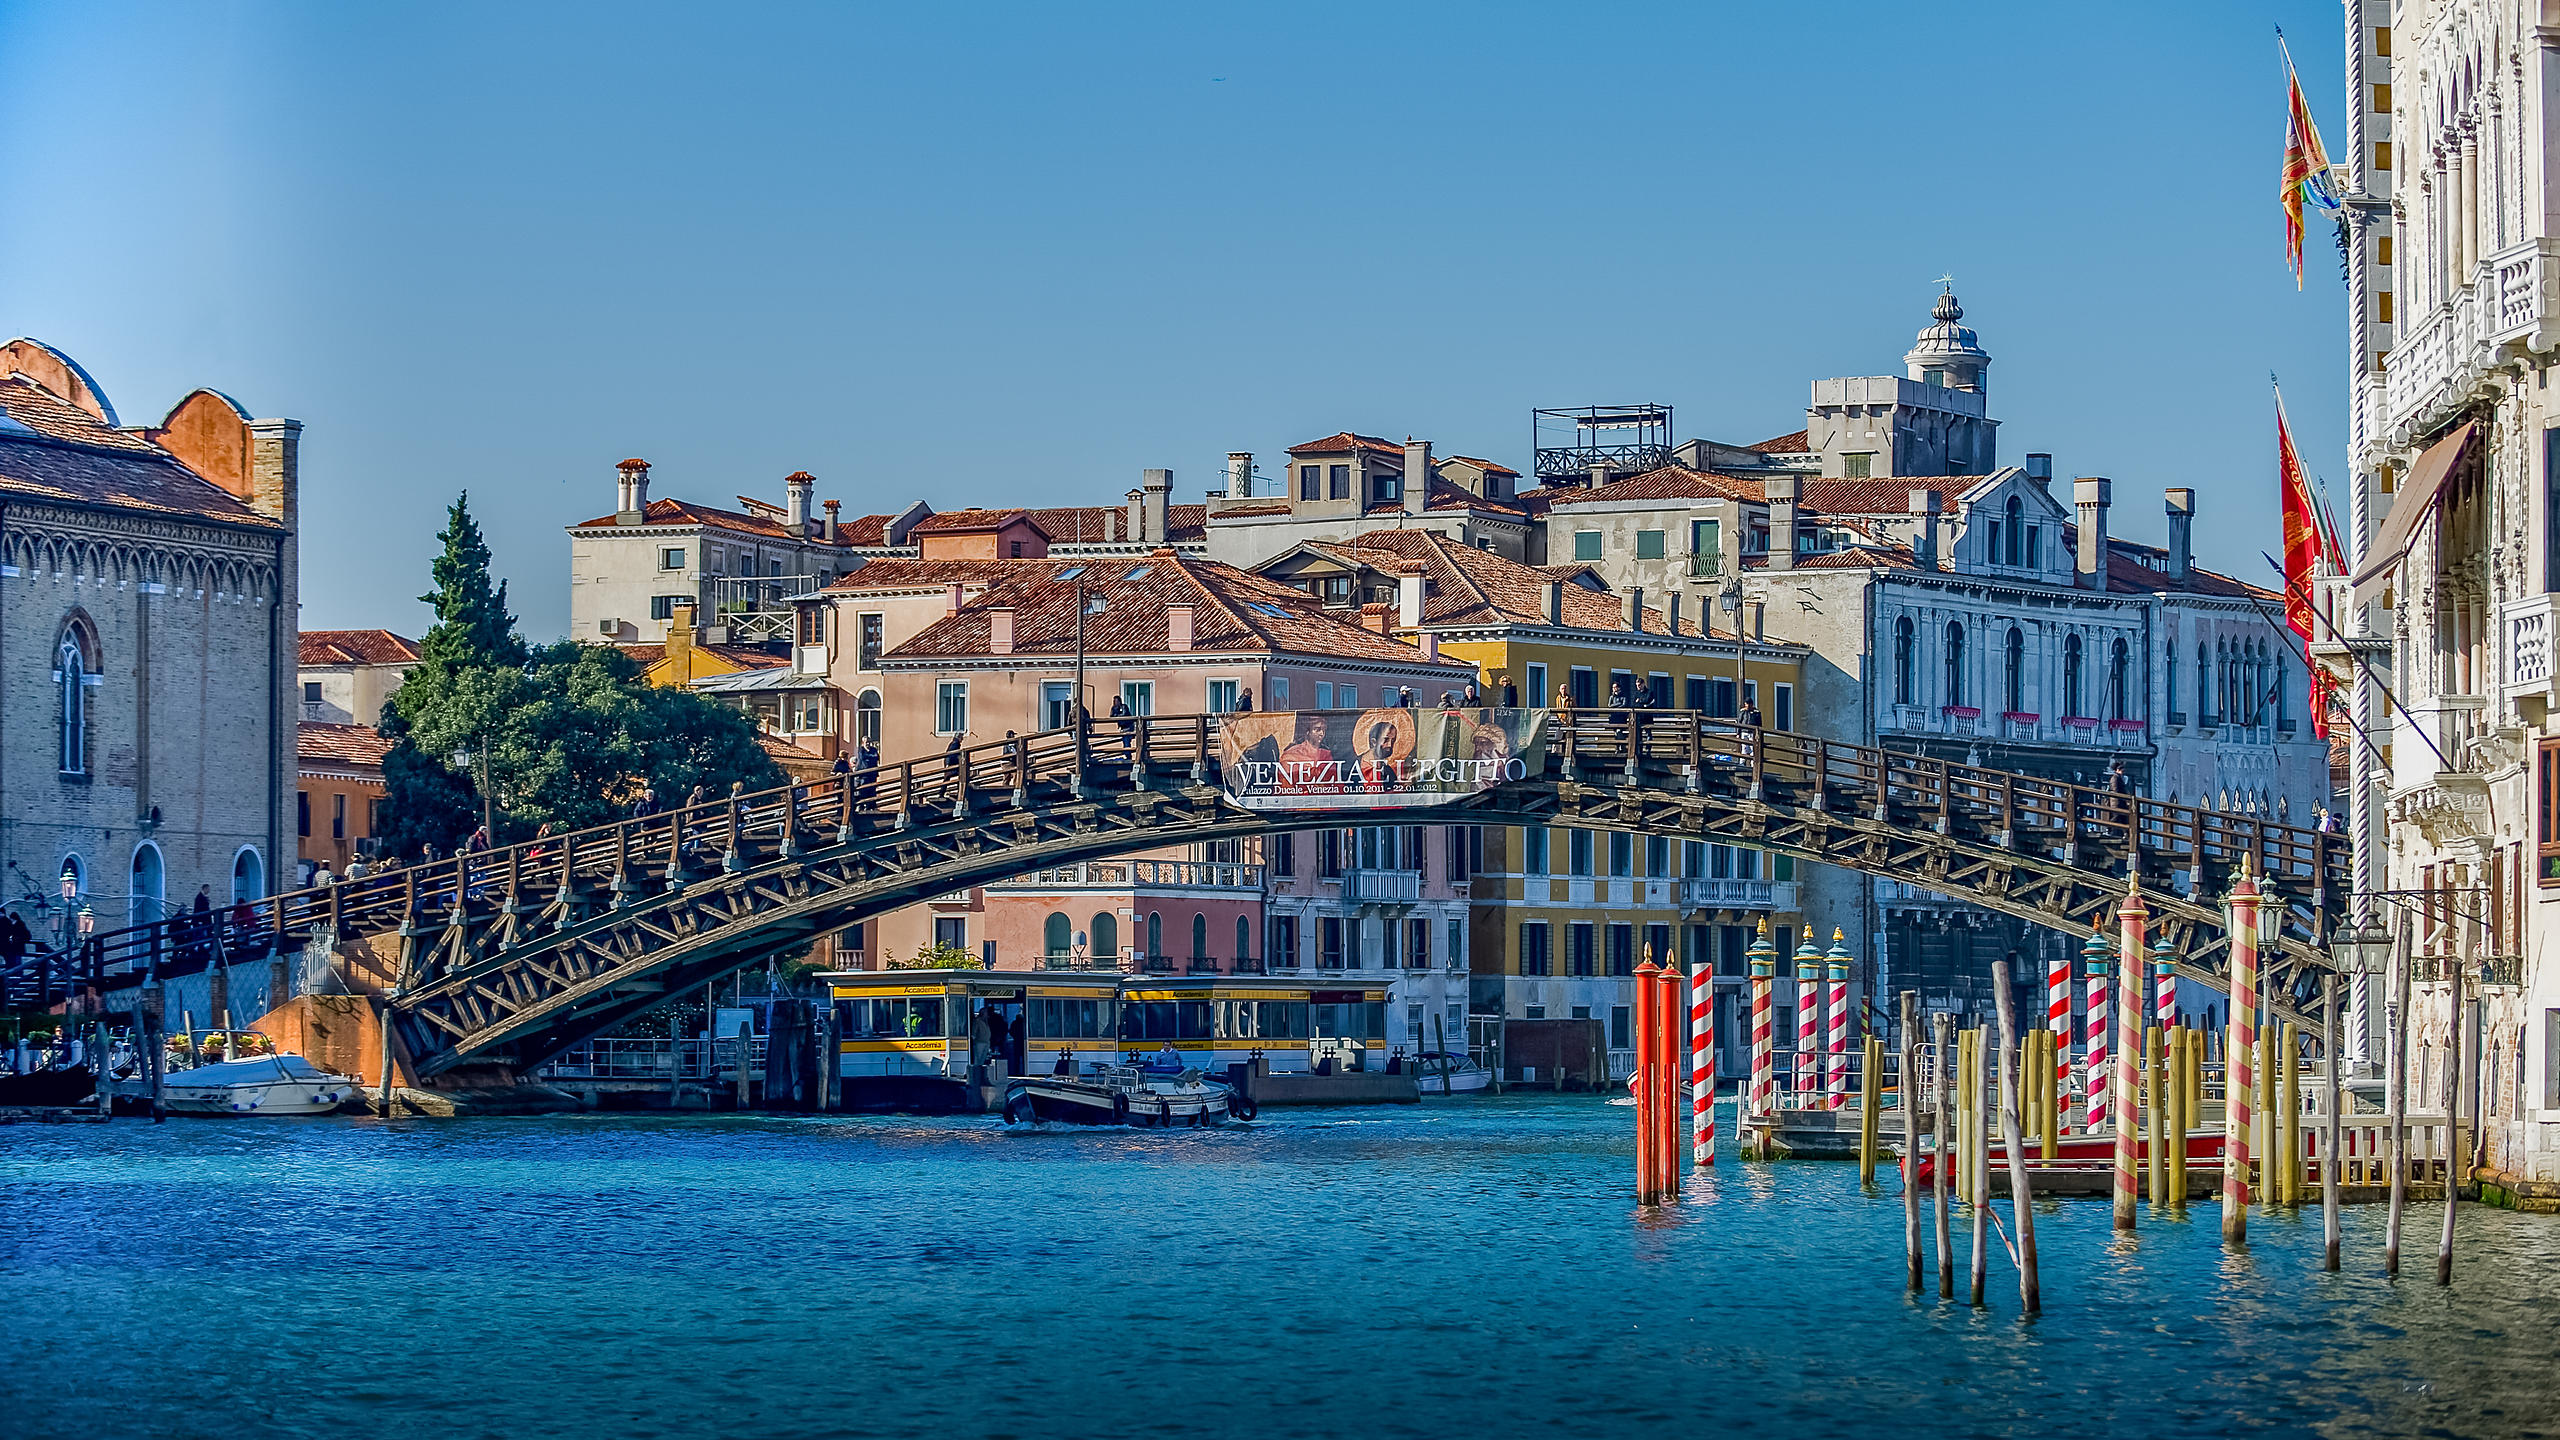 View of the Accademia Bridge along the Grand Canal, Venice